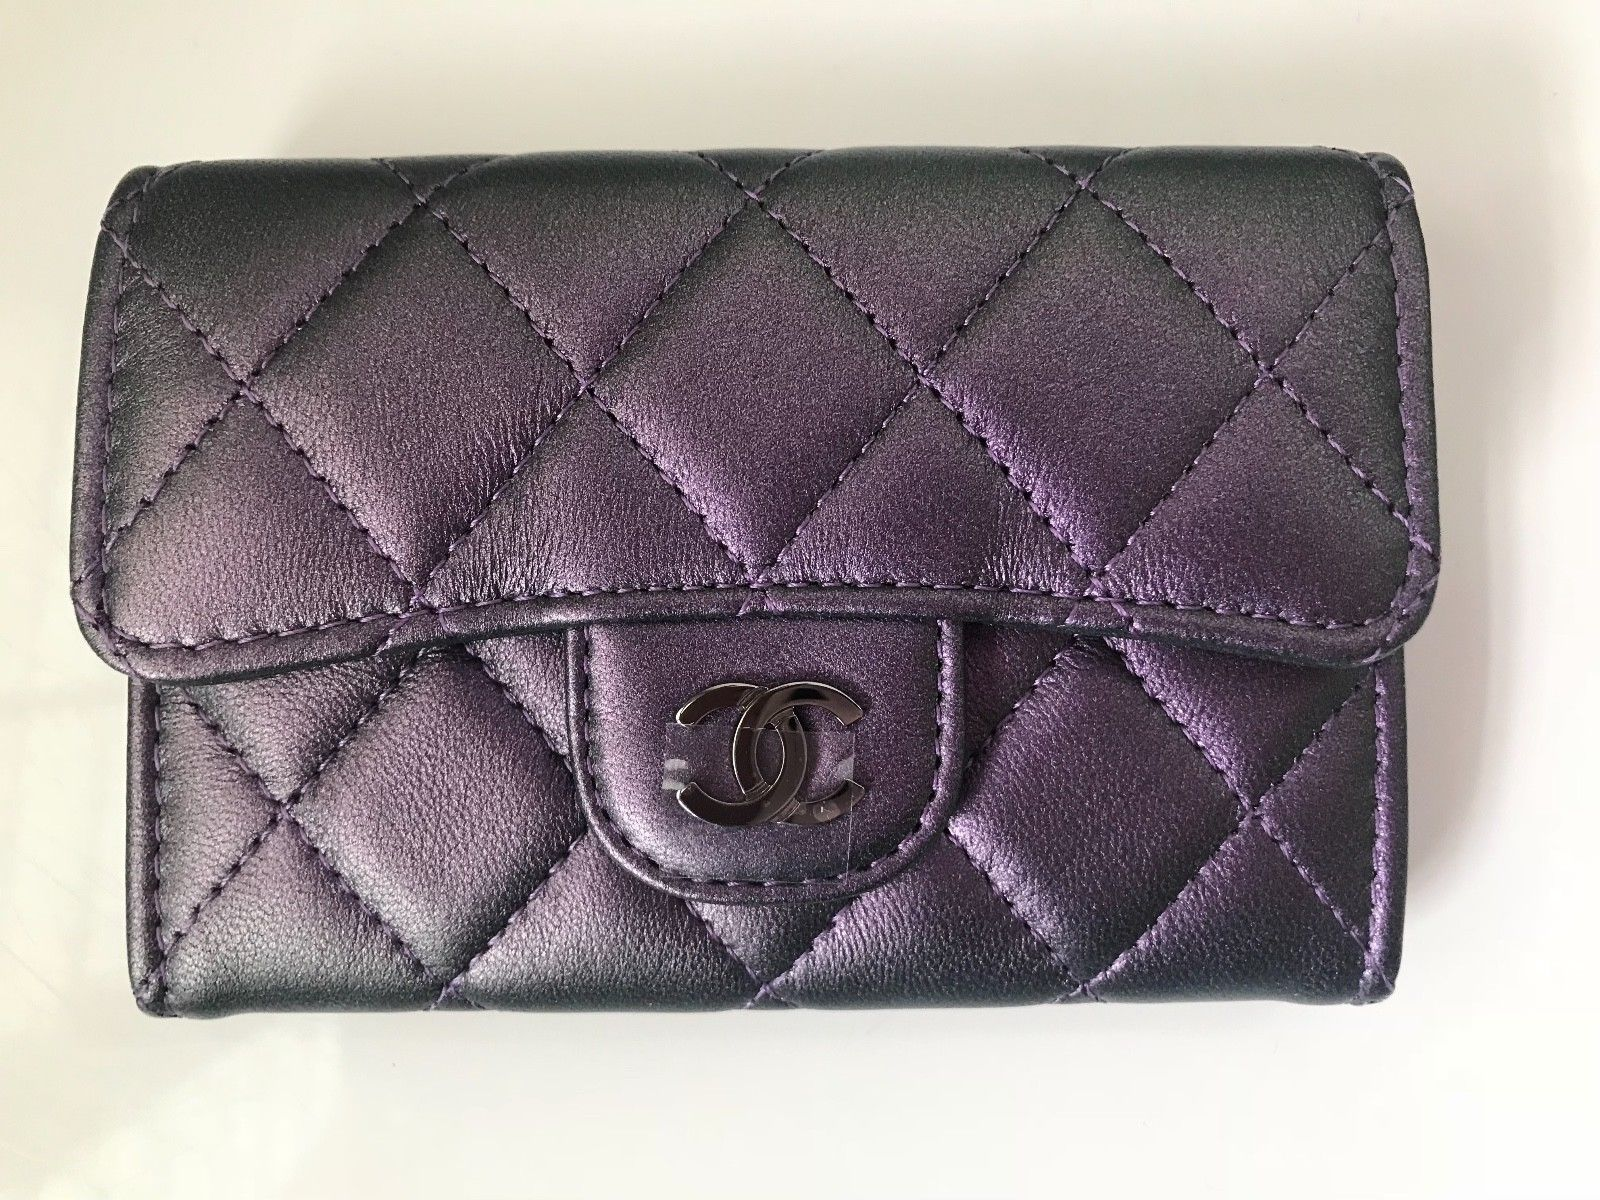 a86971eab749 CHANEL Iridescent Purple Mermaid O-Card Holder O-Case Wallet NEW WITH BOX